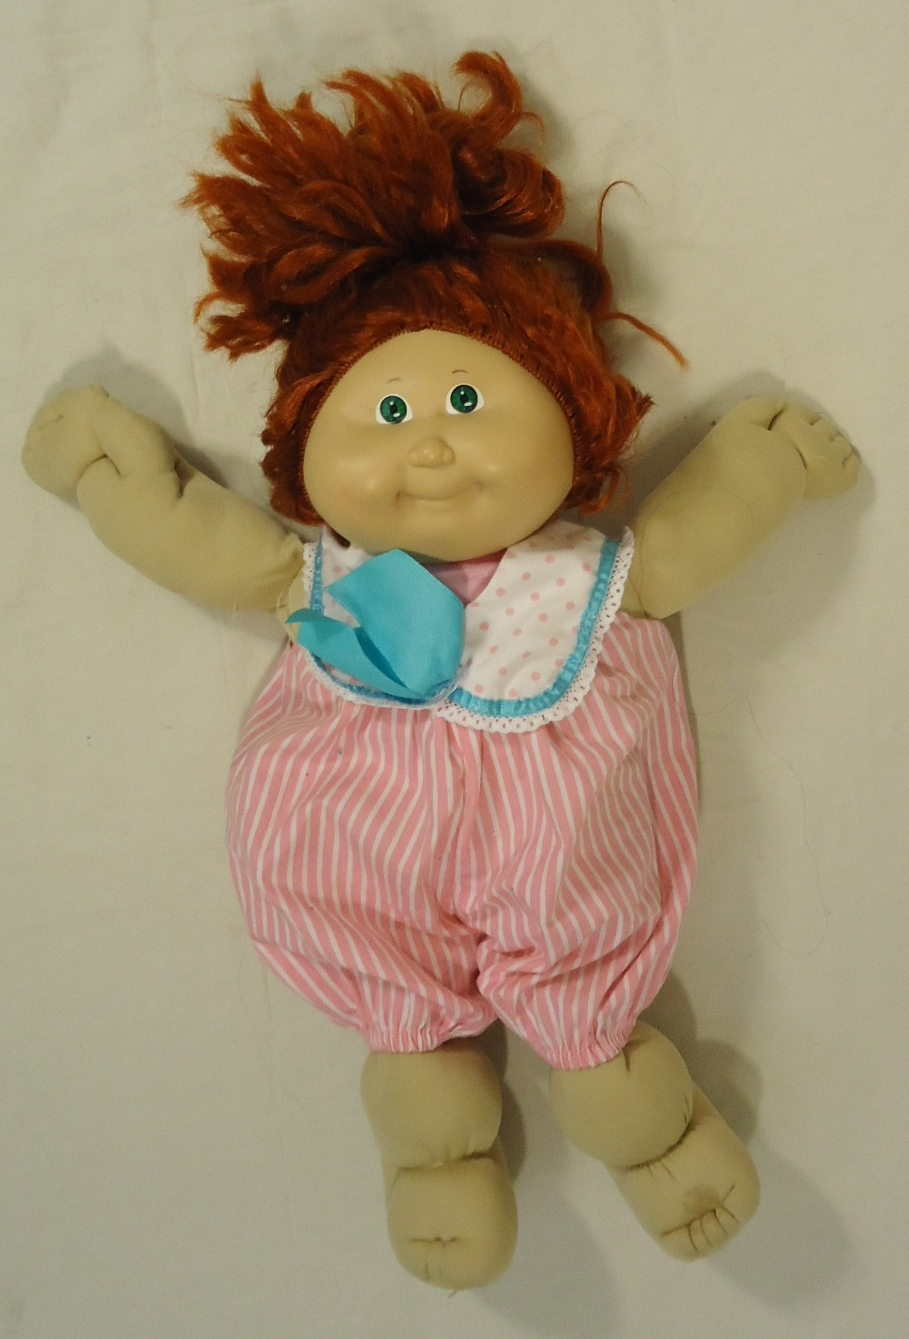 Cabbage Patch Doll Buyers - blogsslot